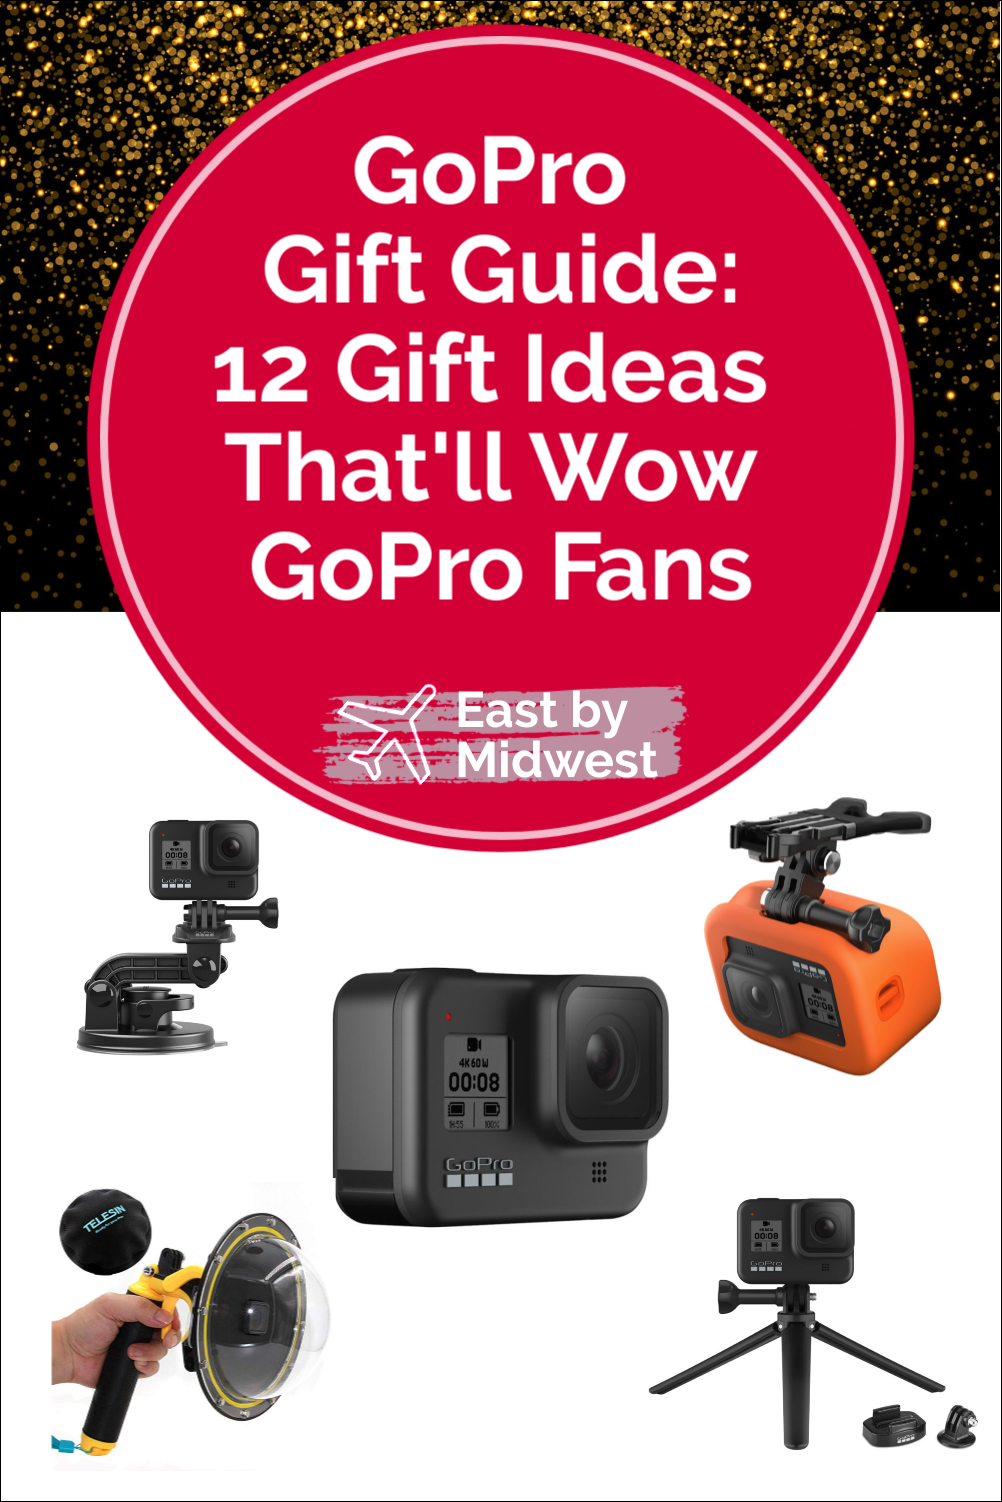 Looking for the perfect gift for the GoPro fan in your life? GoPro fans will geek out over the awesome gifts in this gift guide for GoPro fans. #gopro #giftguide #goprogiftguide #travelphotographer #travelvideo #vlogger #blogger #vlogging